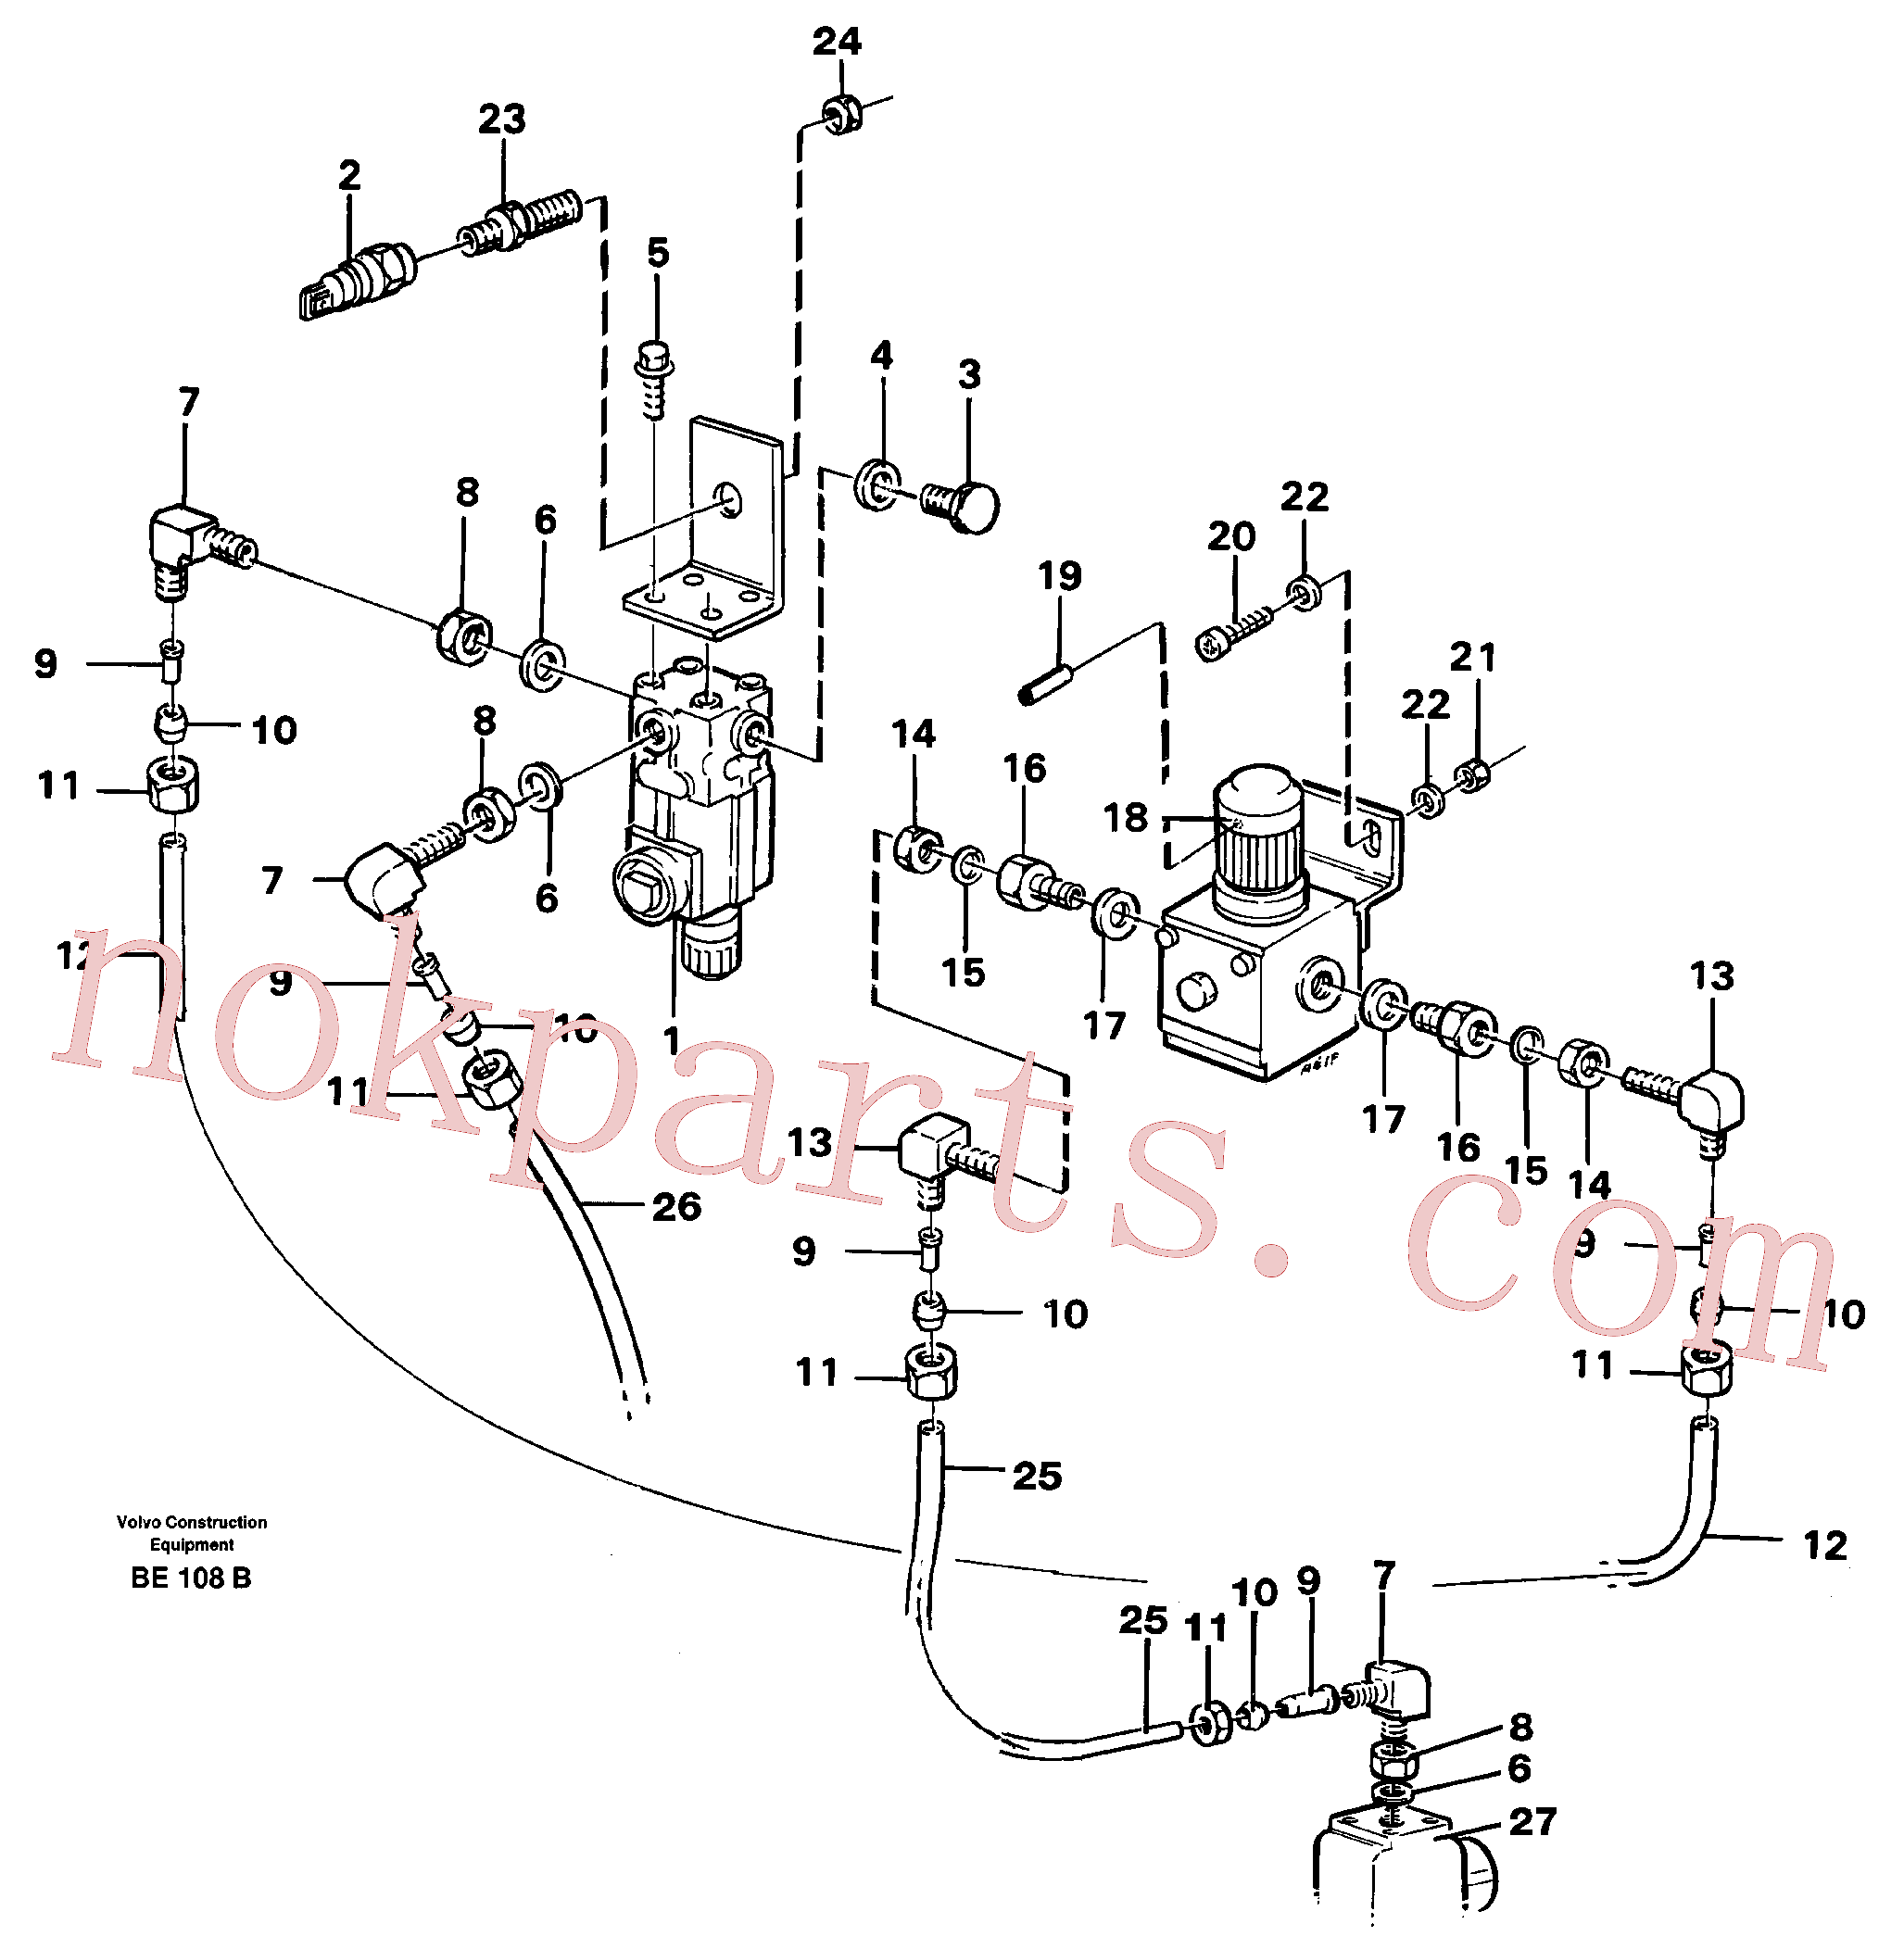 VOE13945892 for Volvo Pneumatic system - gear box(BE108B assembly)